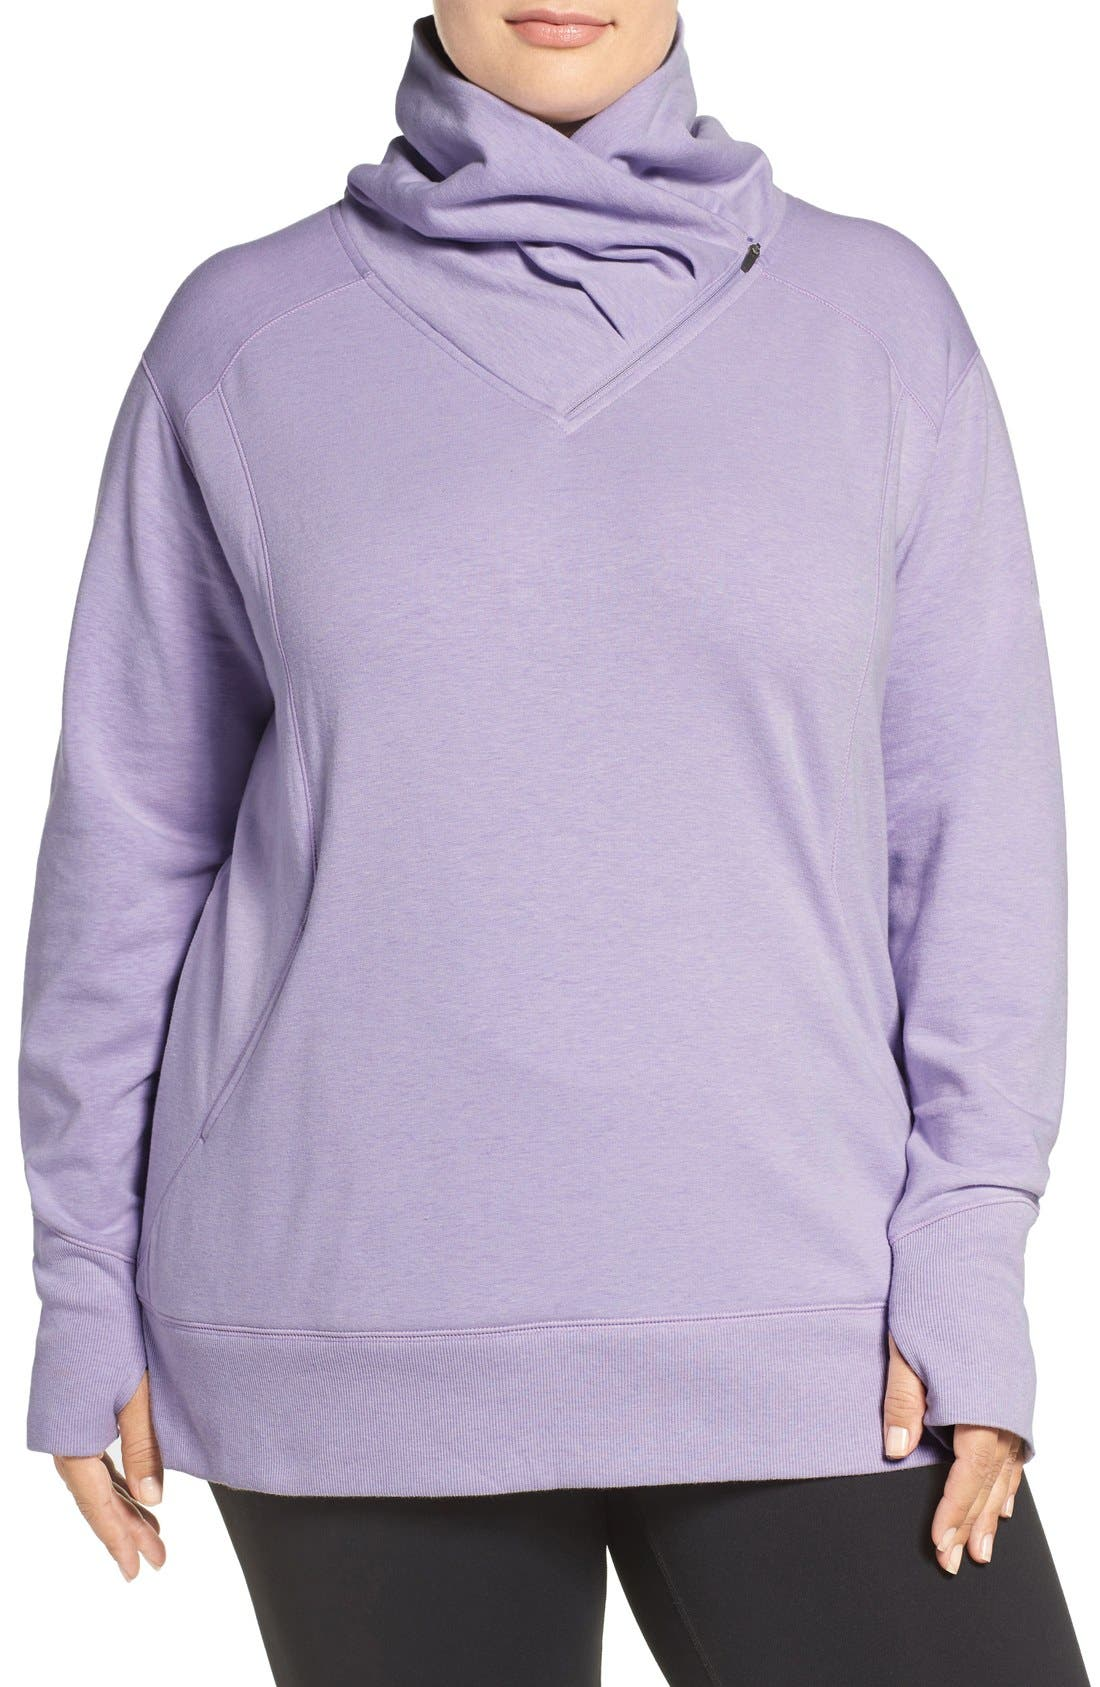 Alternate Image 1 Selected - Zella 'Frosty' Asymmetrical Zip Pullover (Plus Size)